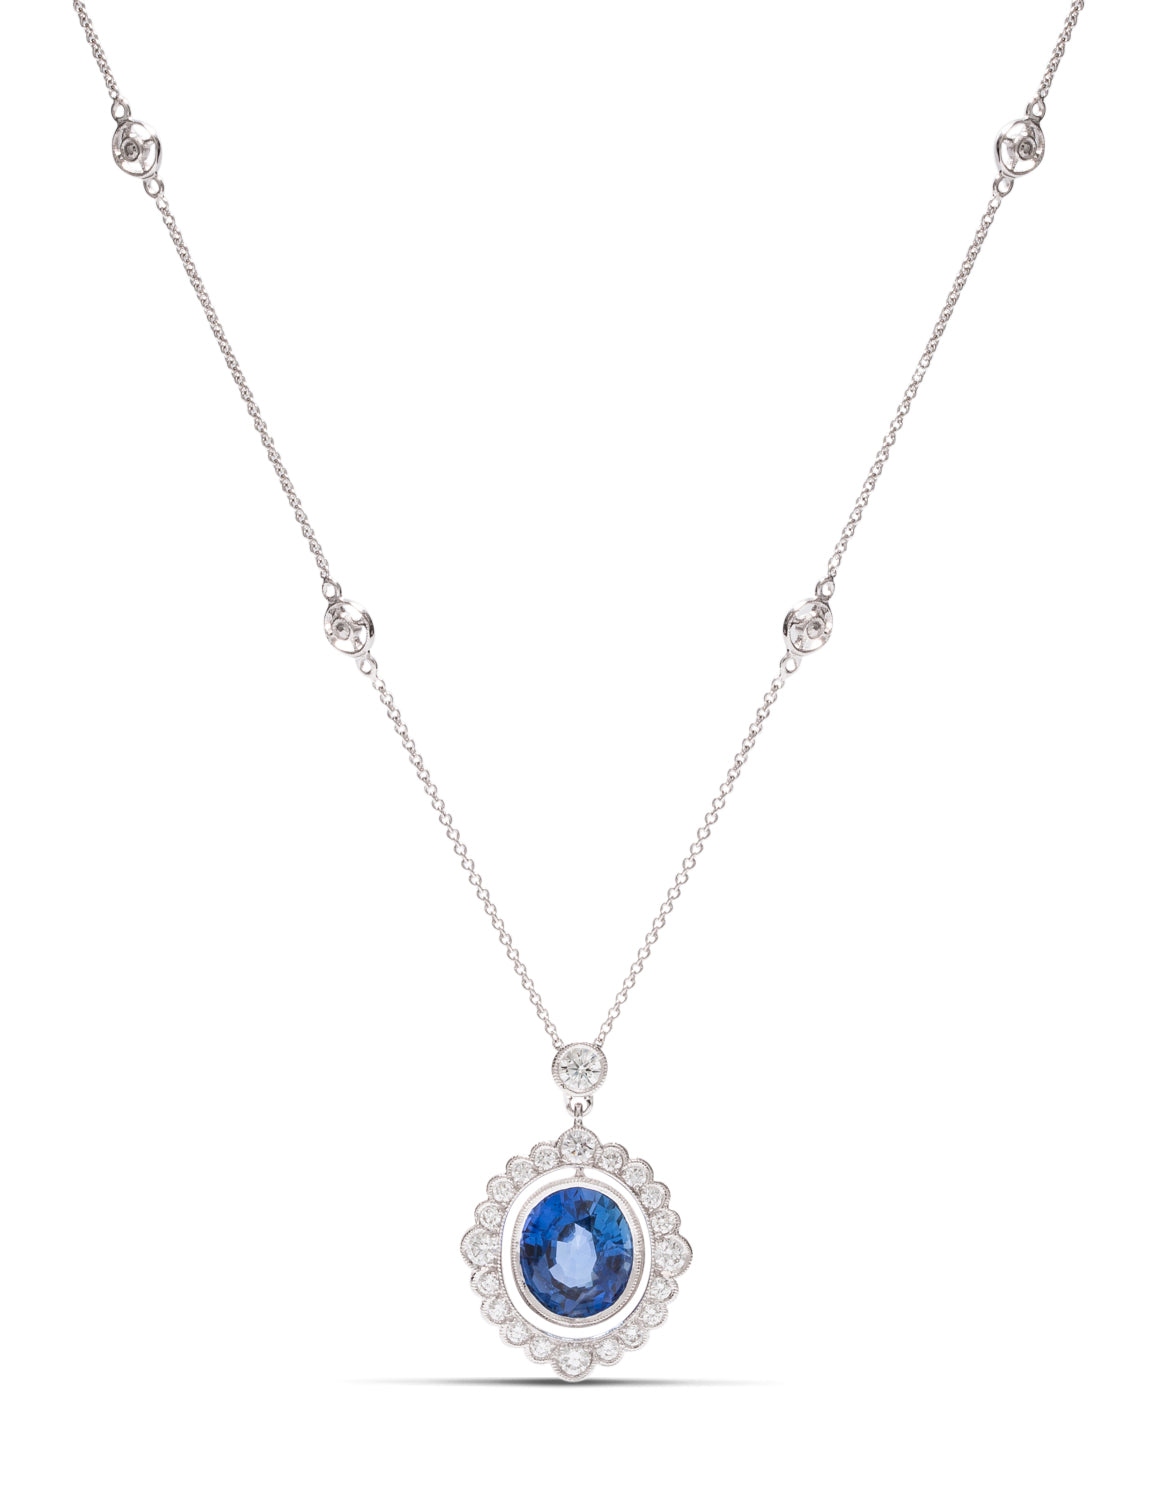 Oval Sapphire and Diamond Necklace - Charles Koll Jewellers